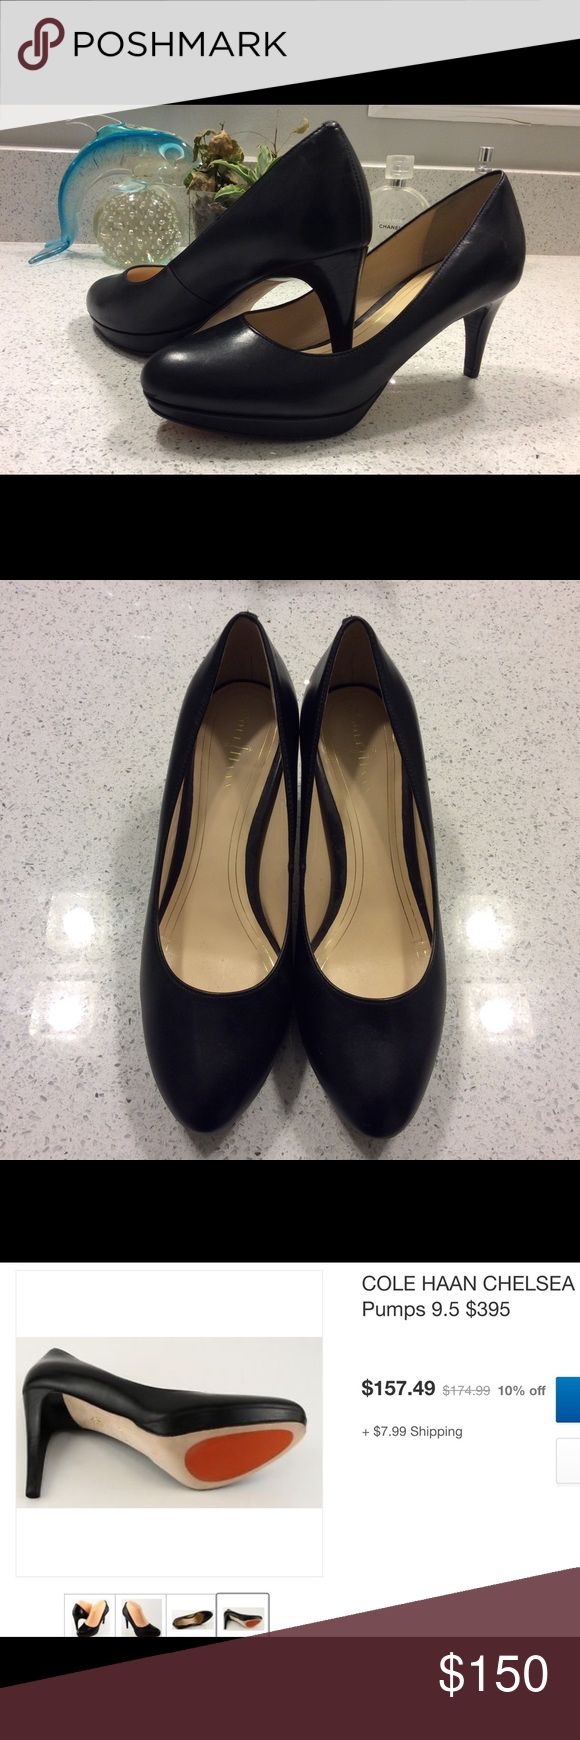 Cole Haan Chelsea Pumps 6.5 REDUCED Retail $395.....Chelsea Cole Haan....Nike Air.....Super comfortable.......Worn only a few times as seen in pic on bottom of shoes. Otherwise in perfect condition. Make me an offer. Cole Haan Shoes Heels